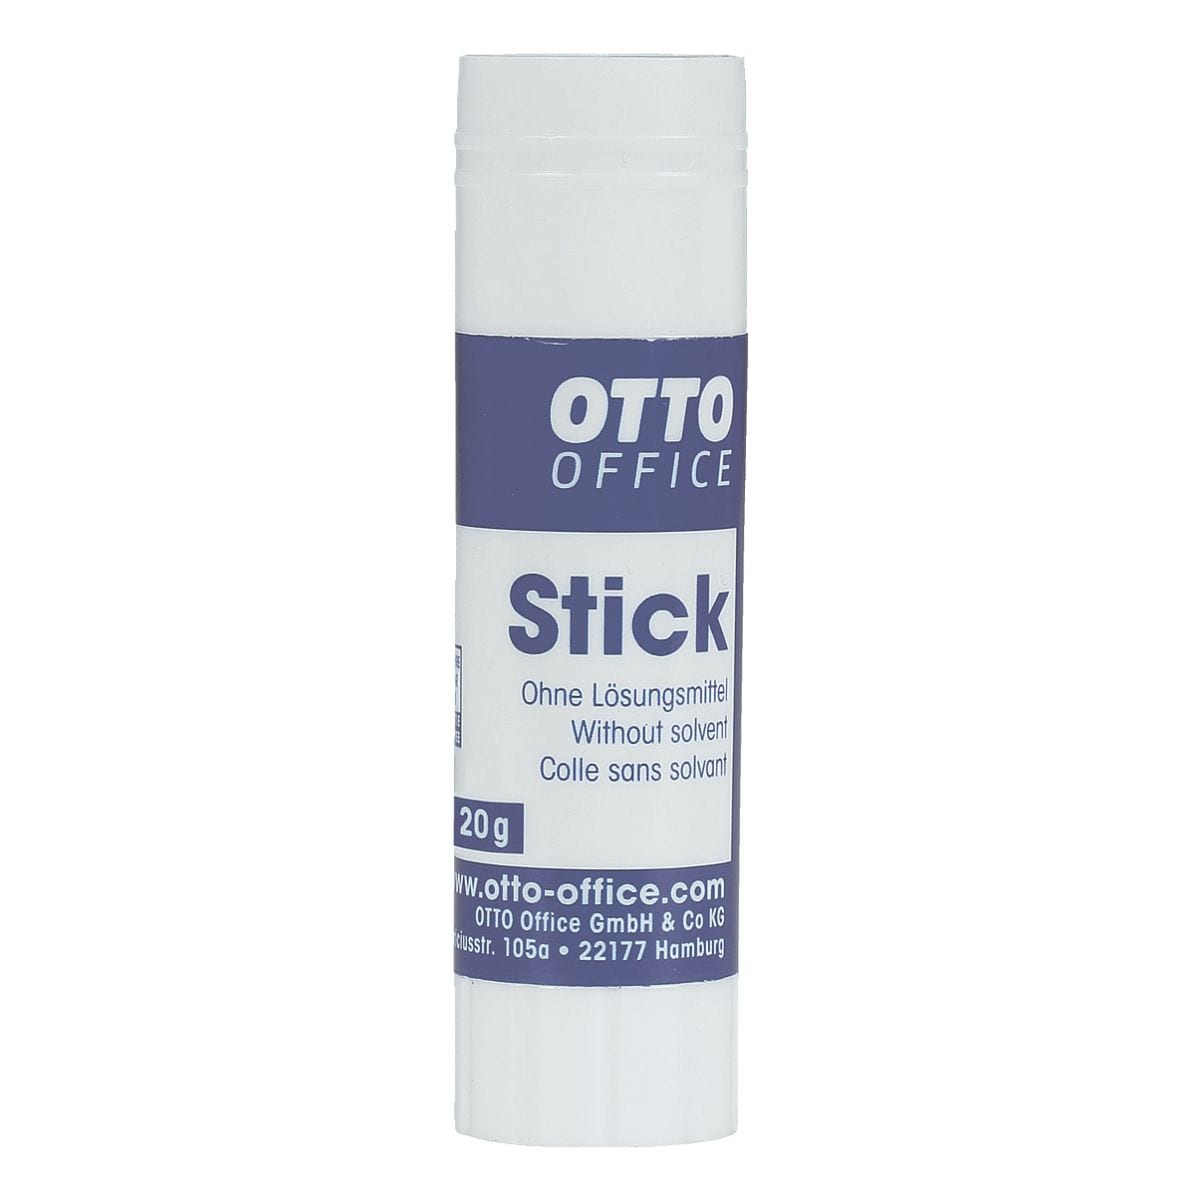 OTTO Office Klebestift »Stick« 20 g